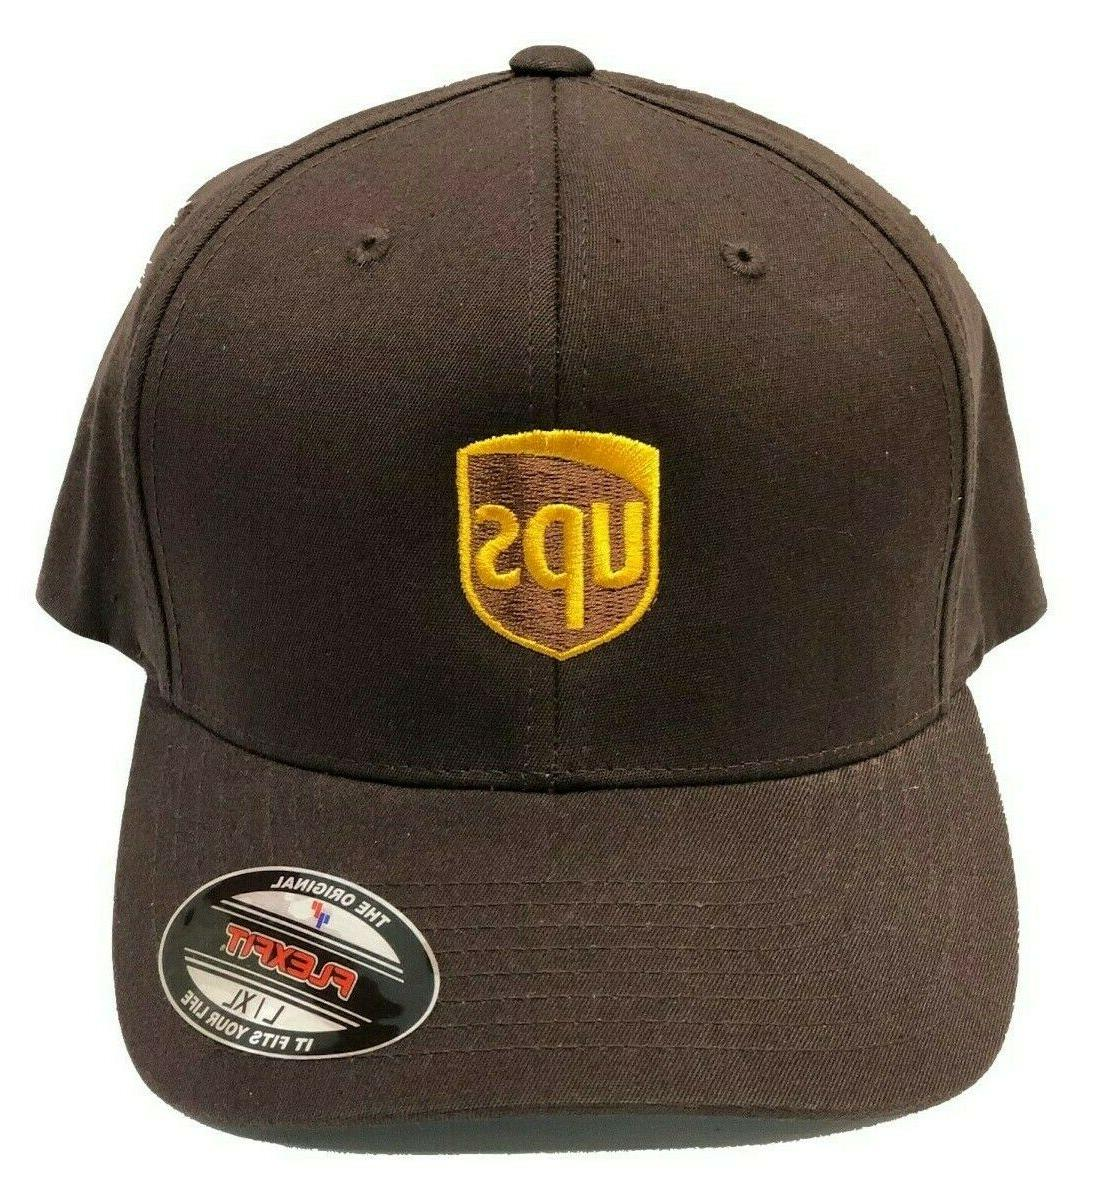 ups brown flex fitted cap hat delivery